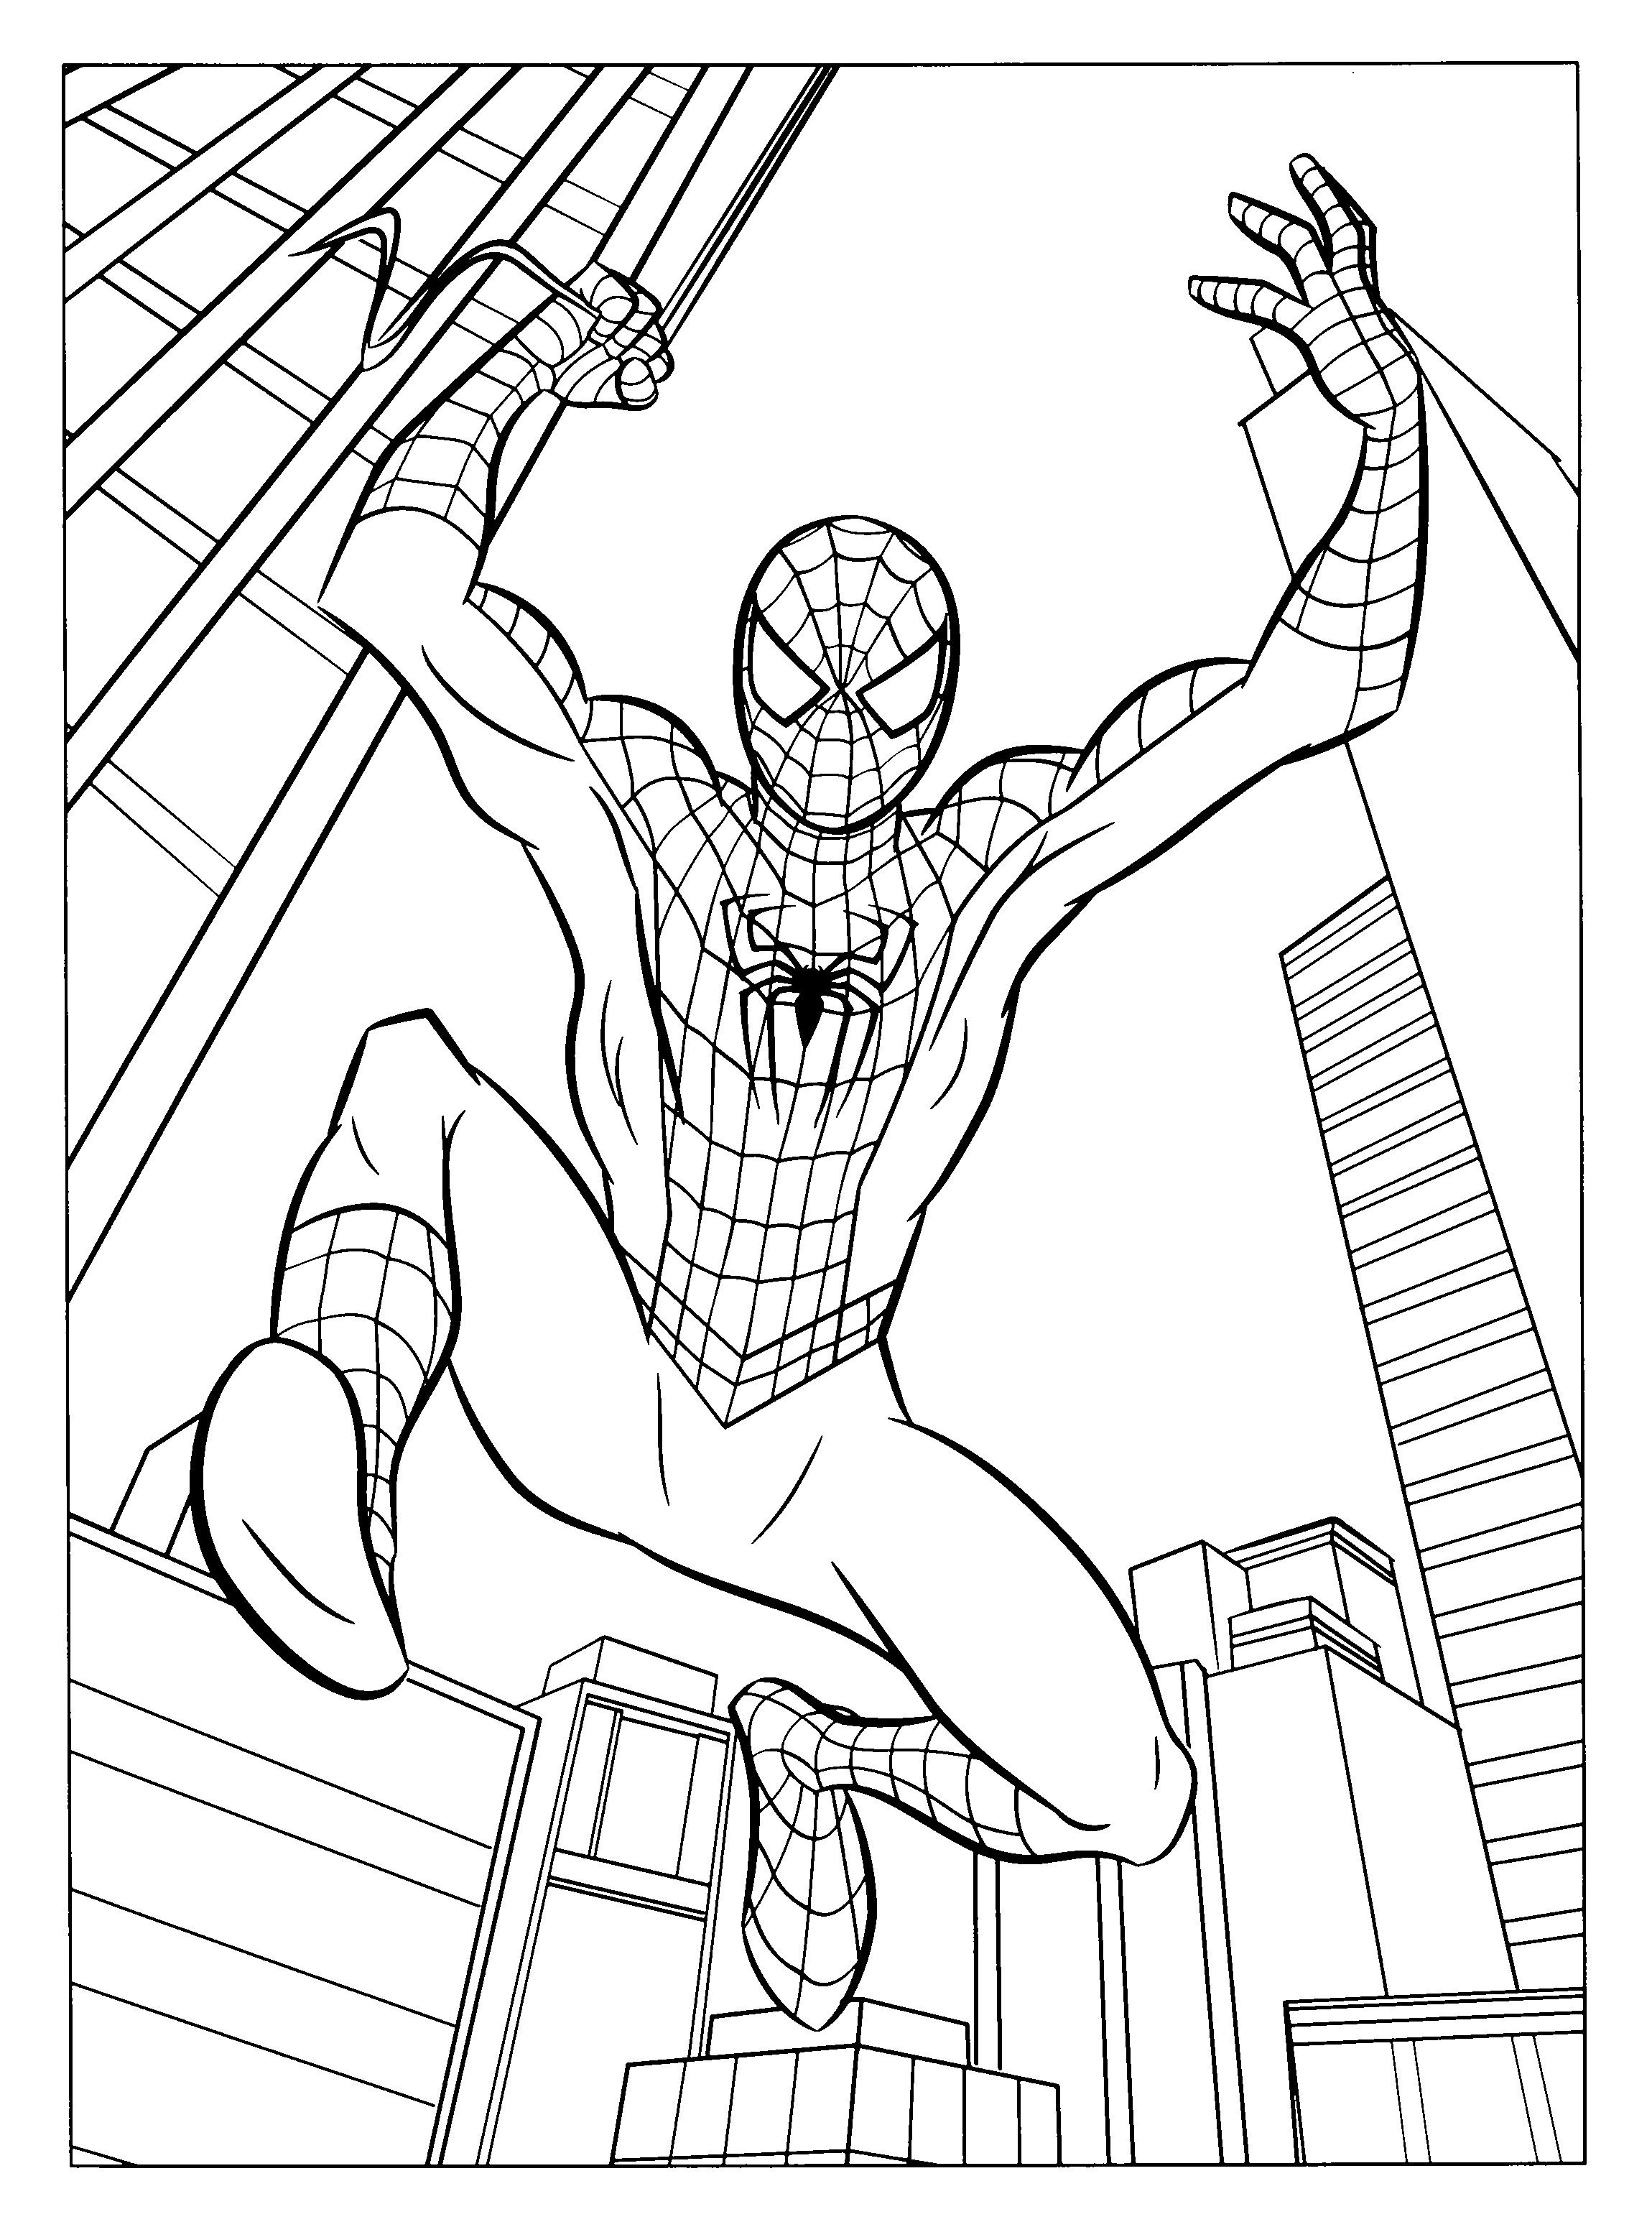 Free Printable Spiderman Coloring Pages For Kids Superhero Coloring Pages Batman Coloring Pages Superhero Coloring